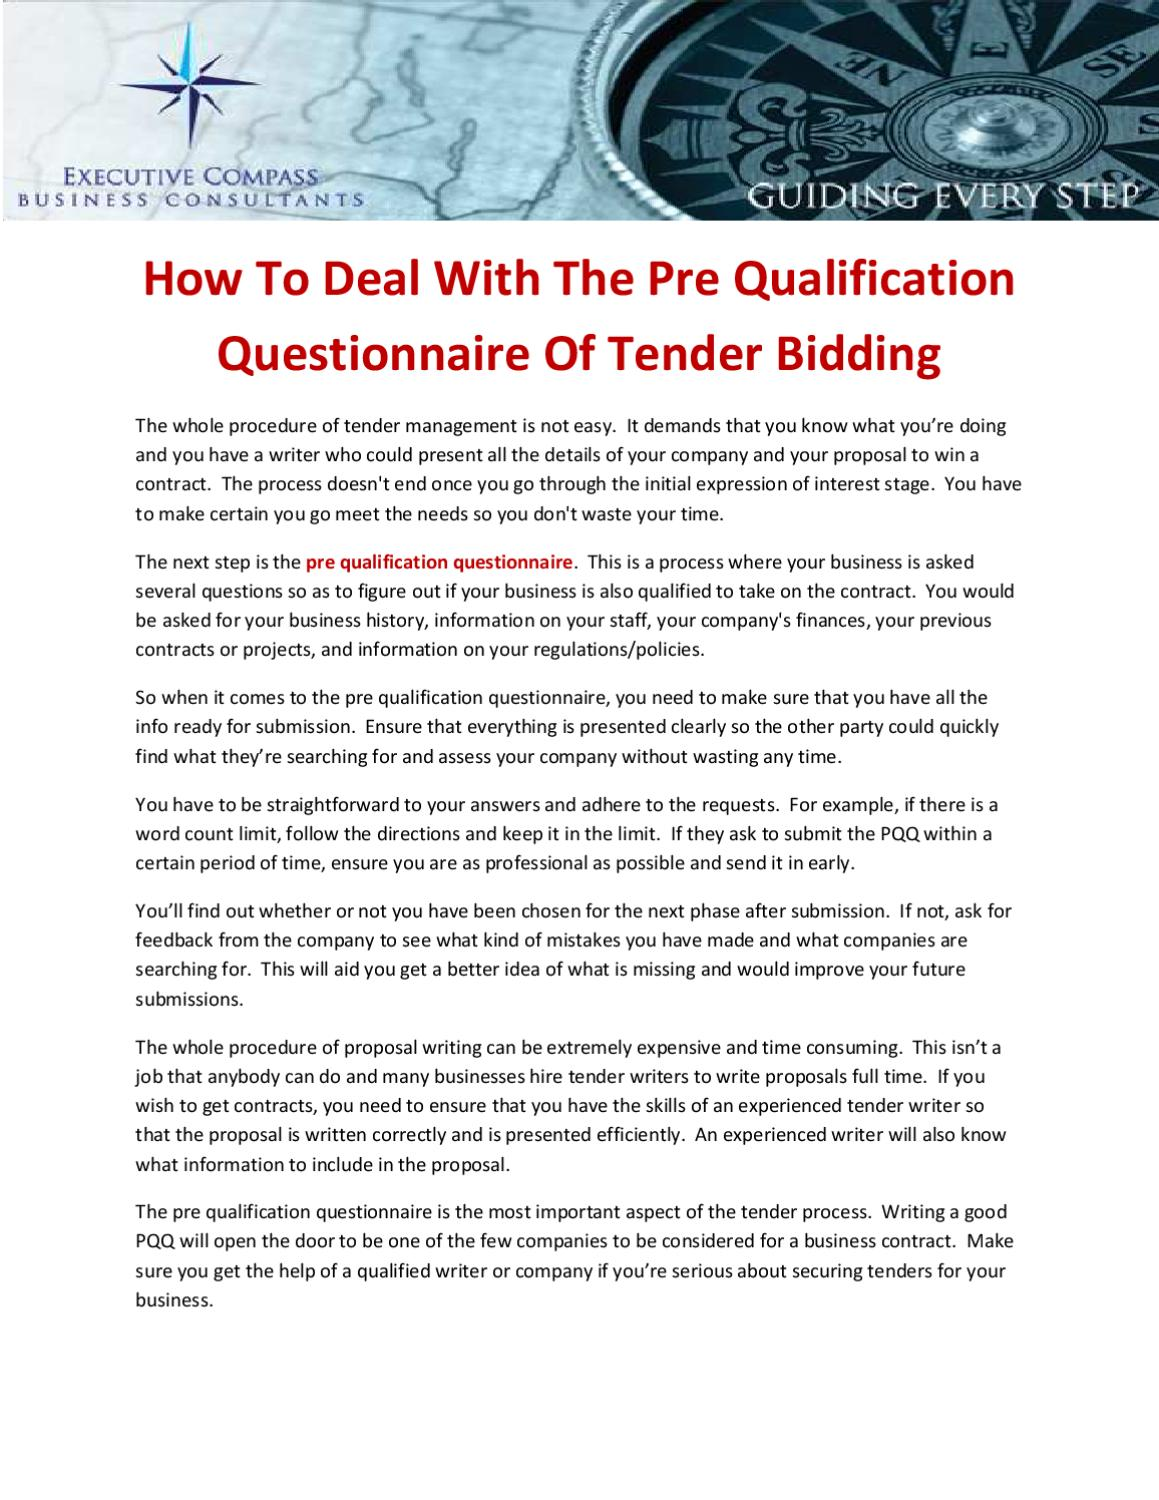 How To Deal With The Pre Qualification Questionnaire Of